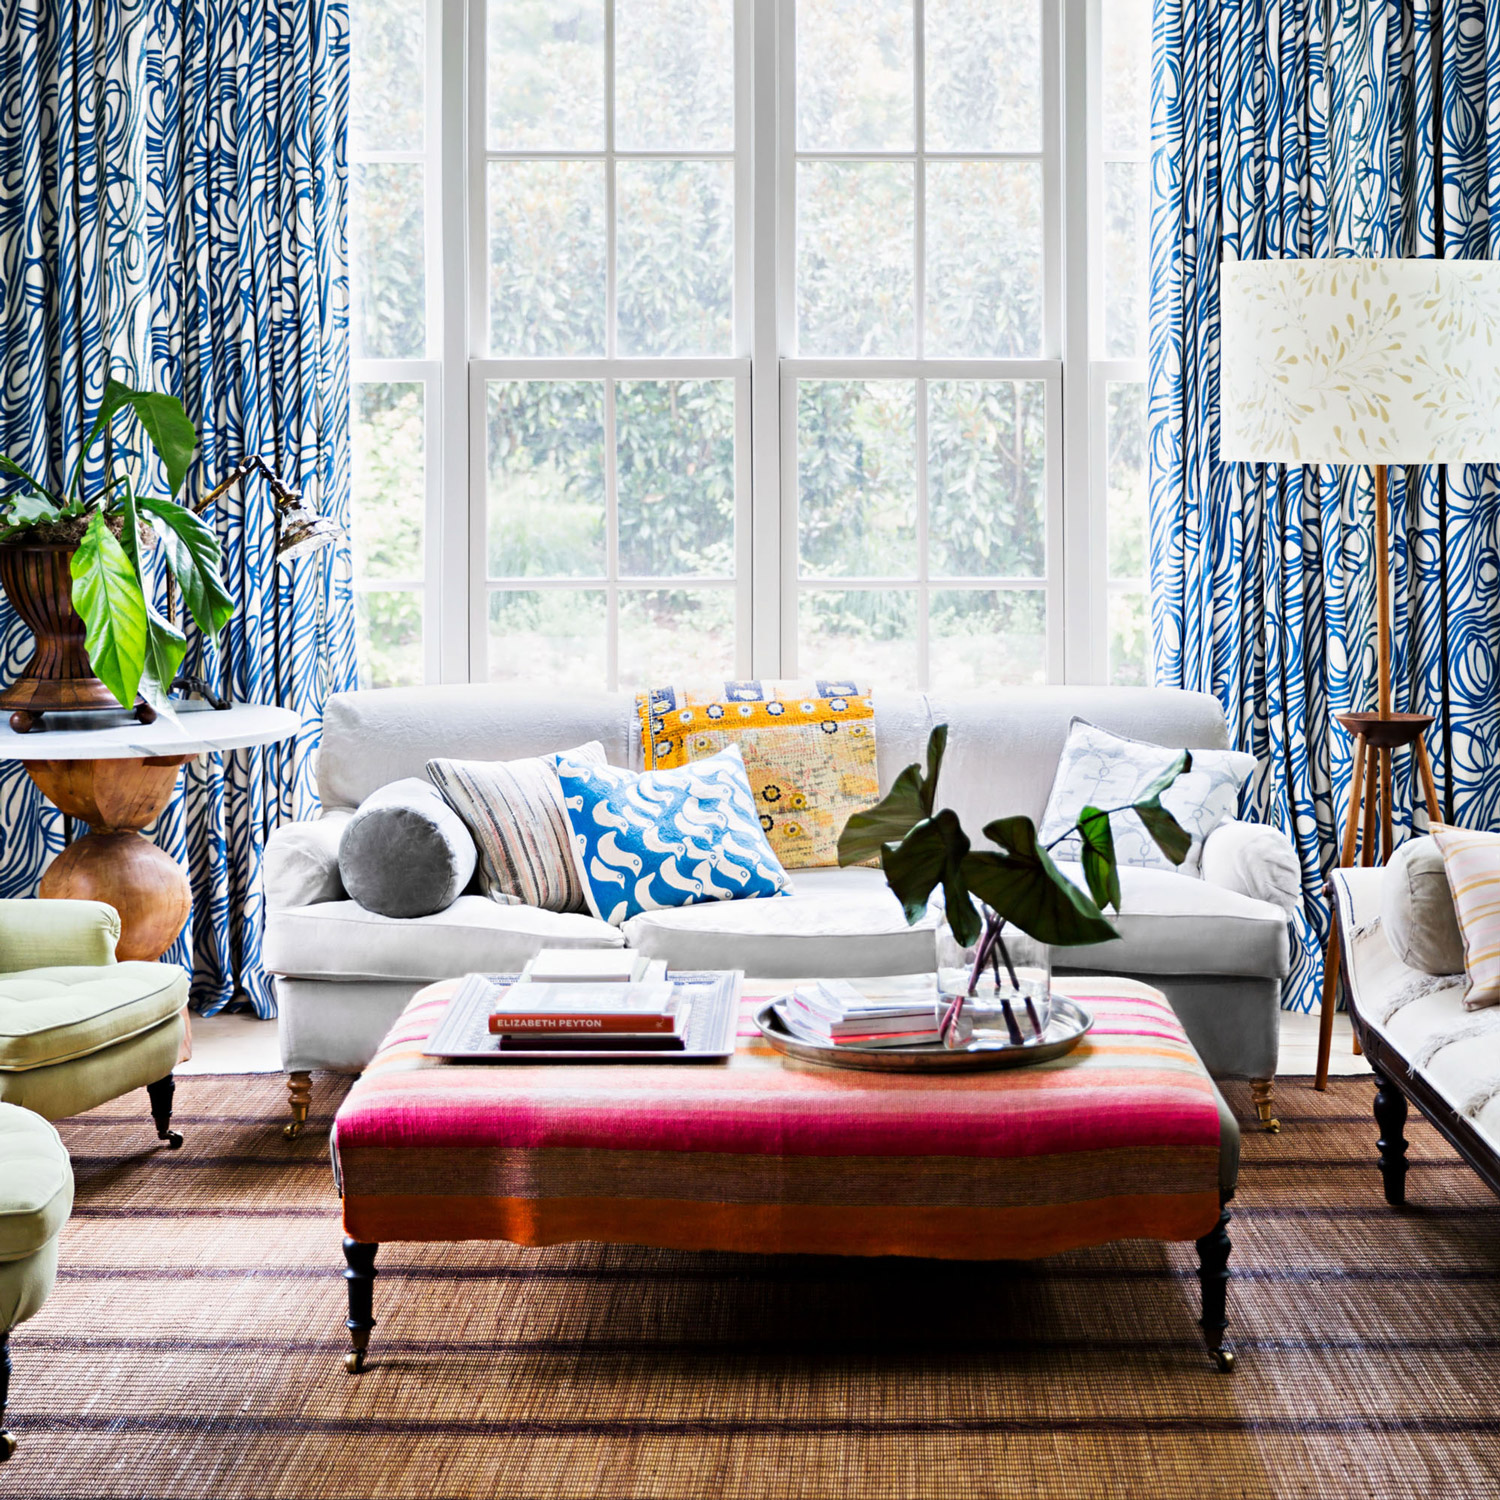 living room with striped ottoman doubling as table